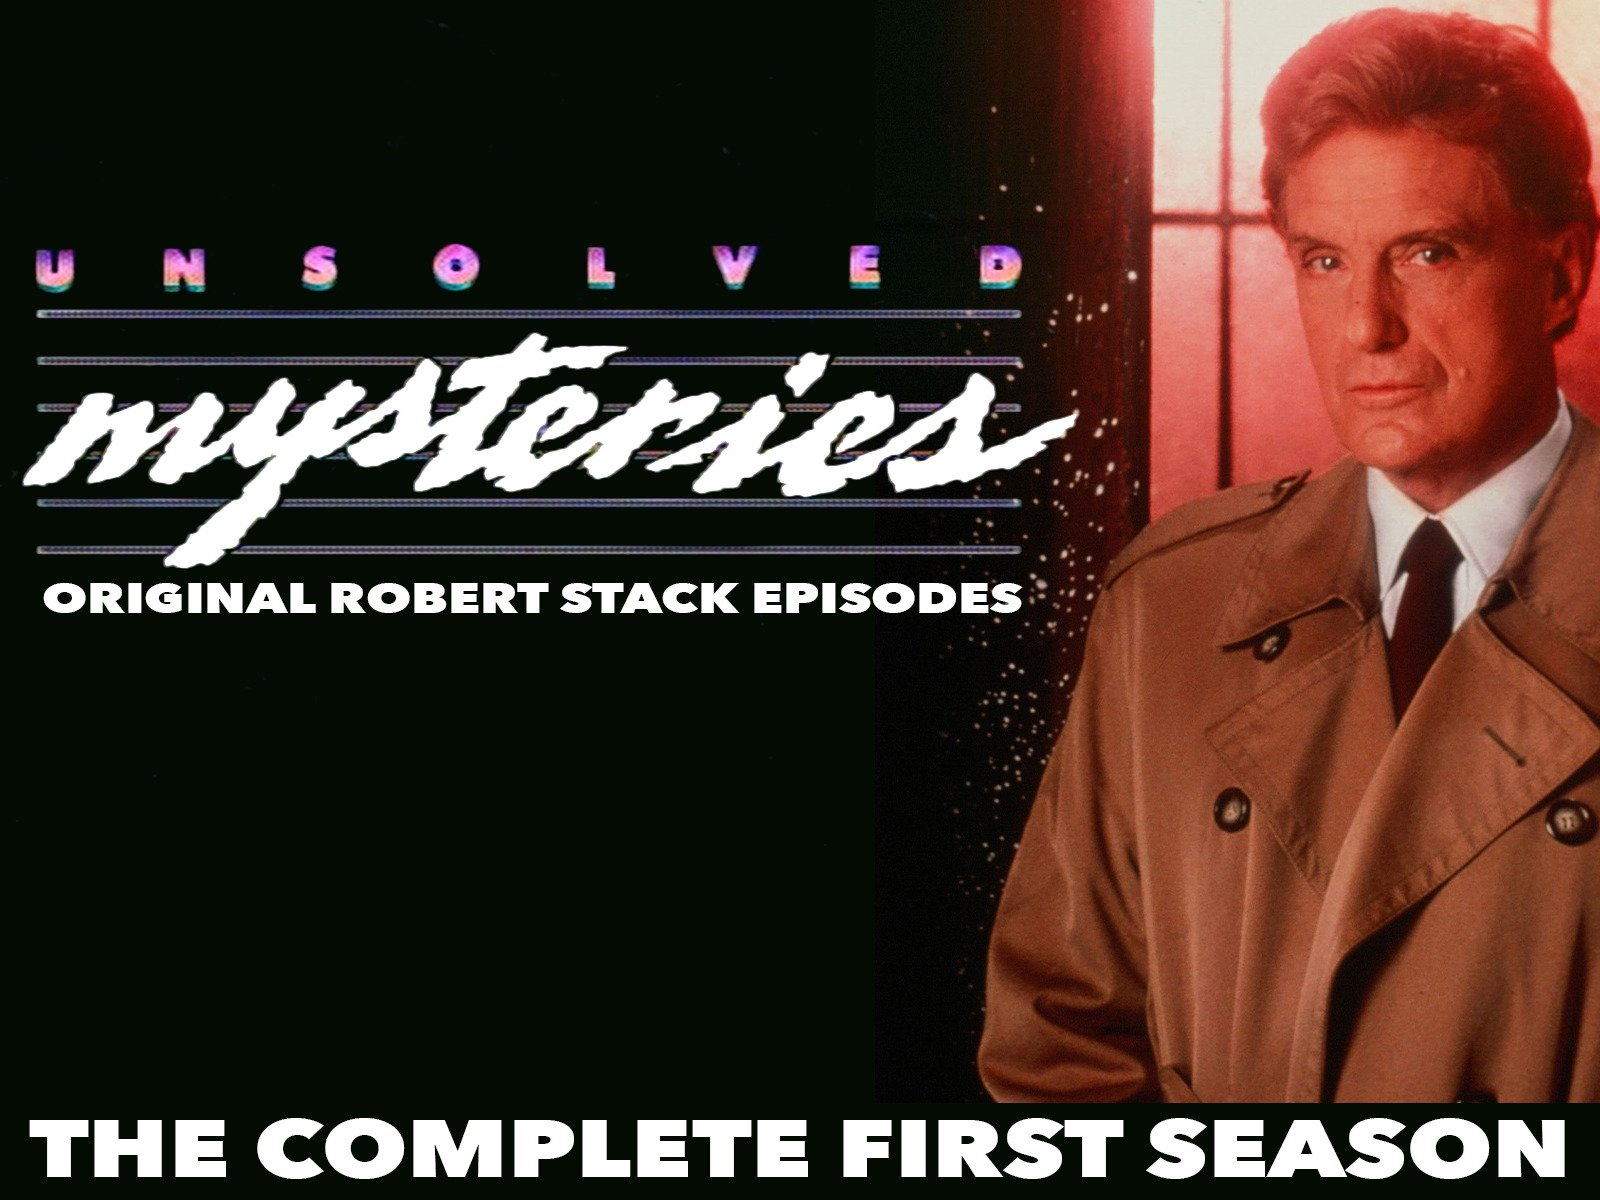 Amazon.com: Unsolved Mysteries: Original Robert Stack Episodes ...